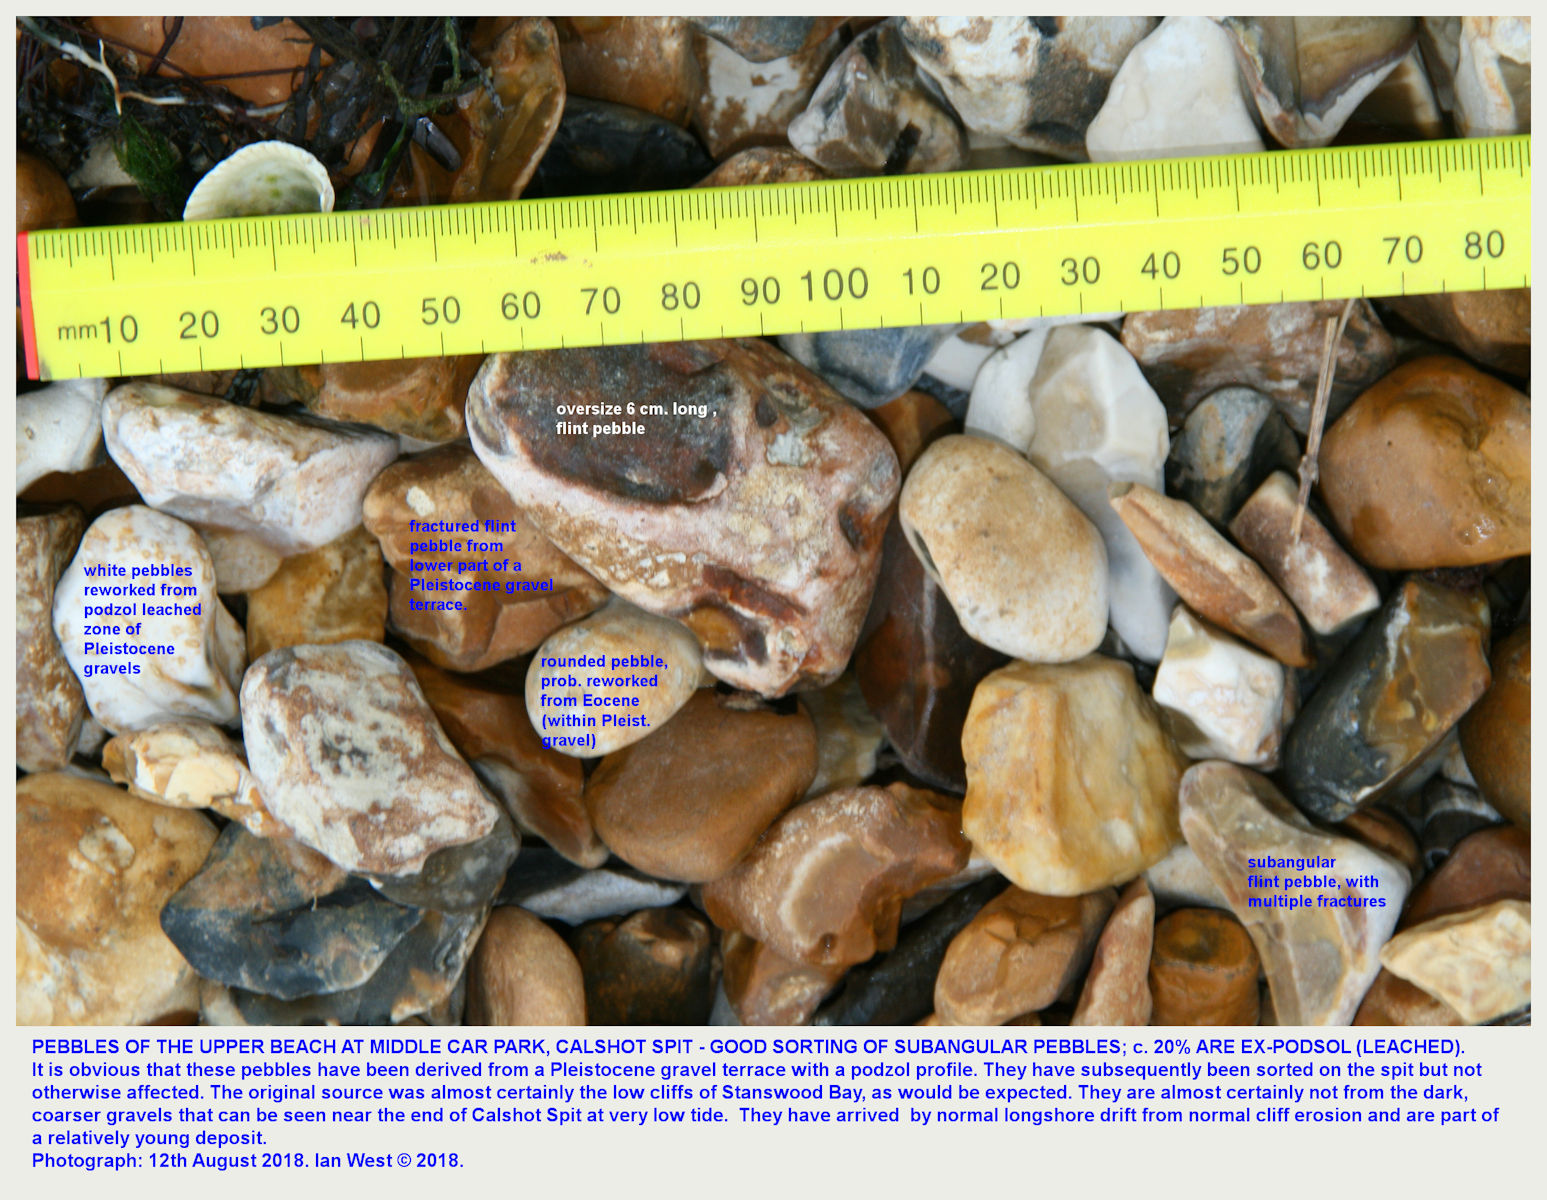 More typical beach pebbles of Calshot Spit, as seen on the beach in front of the mid-spit car park, with some pebble details labelled